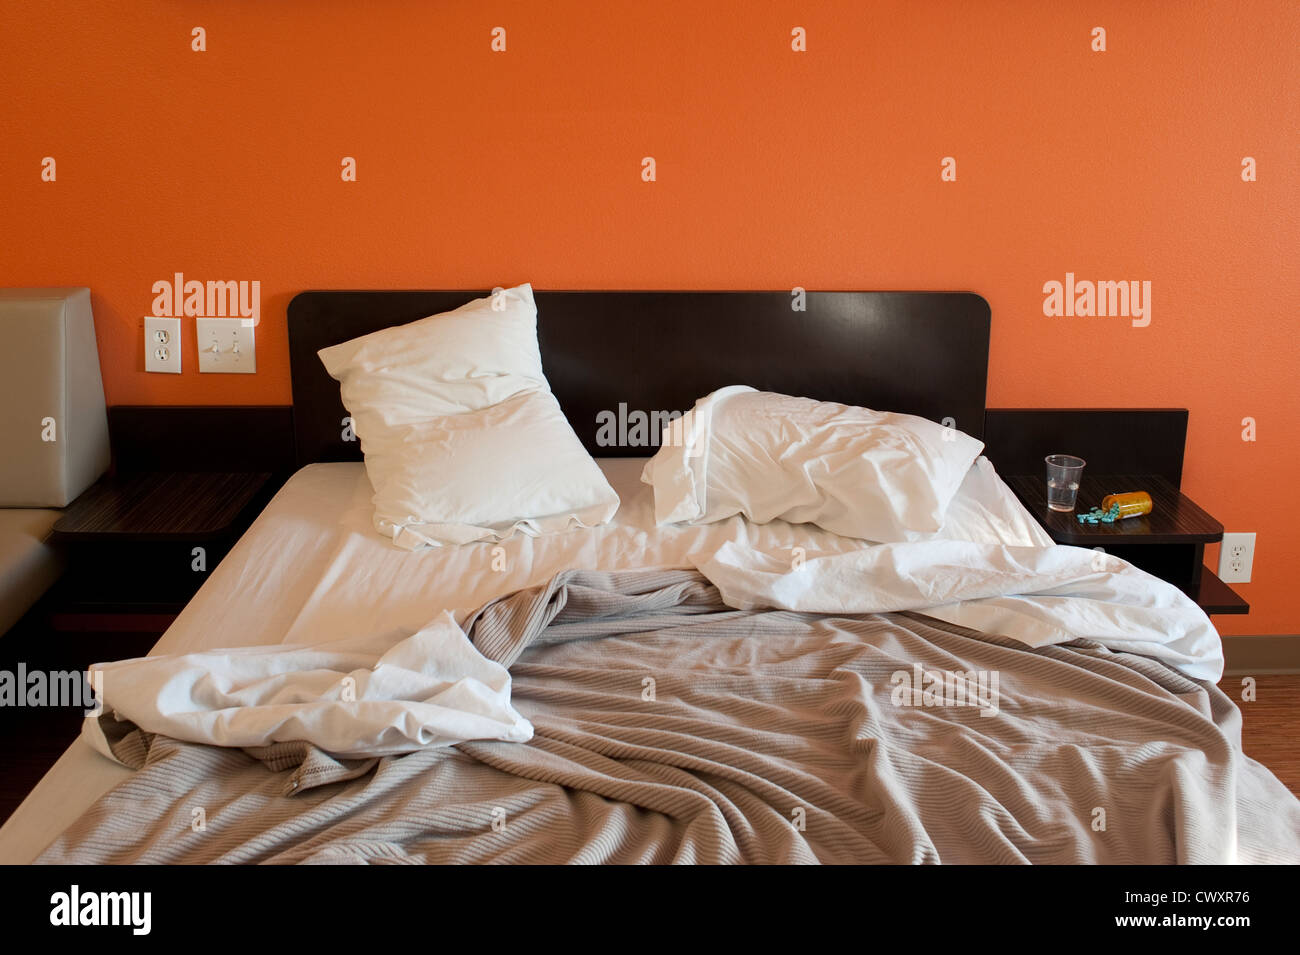 Motel room with bed and medications pill bottles on side table and messy bed - Stock Image